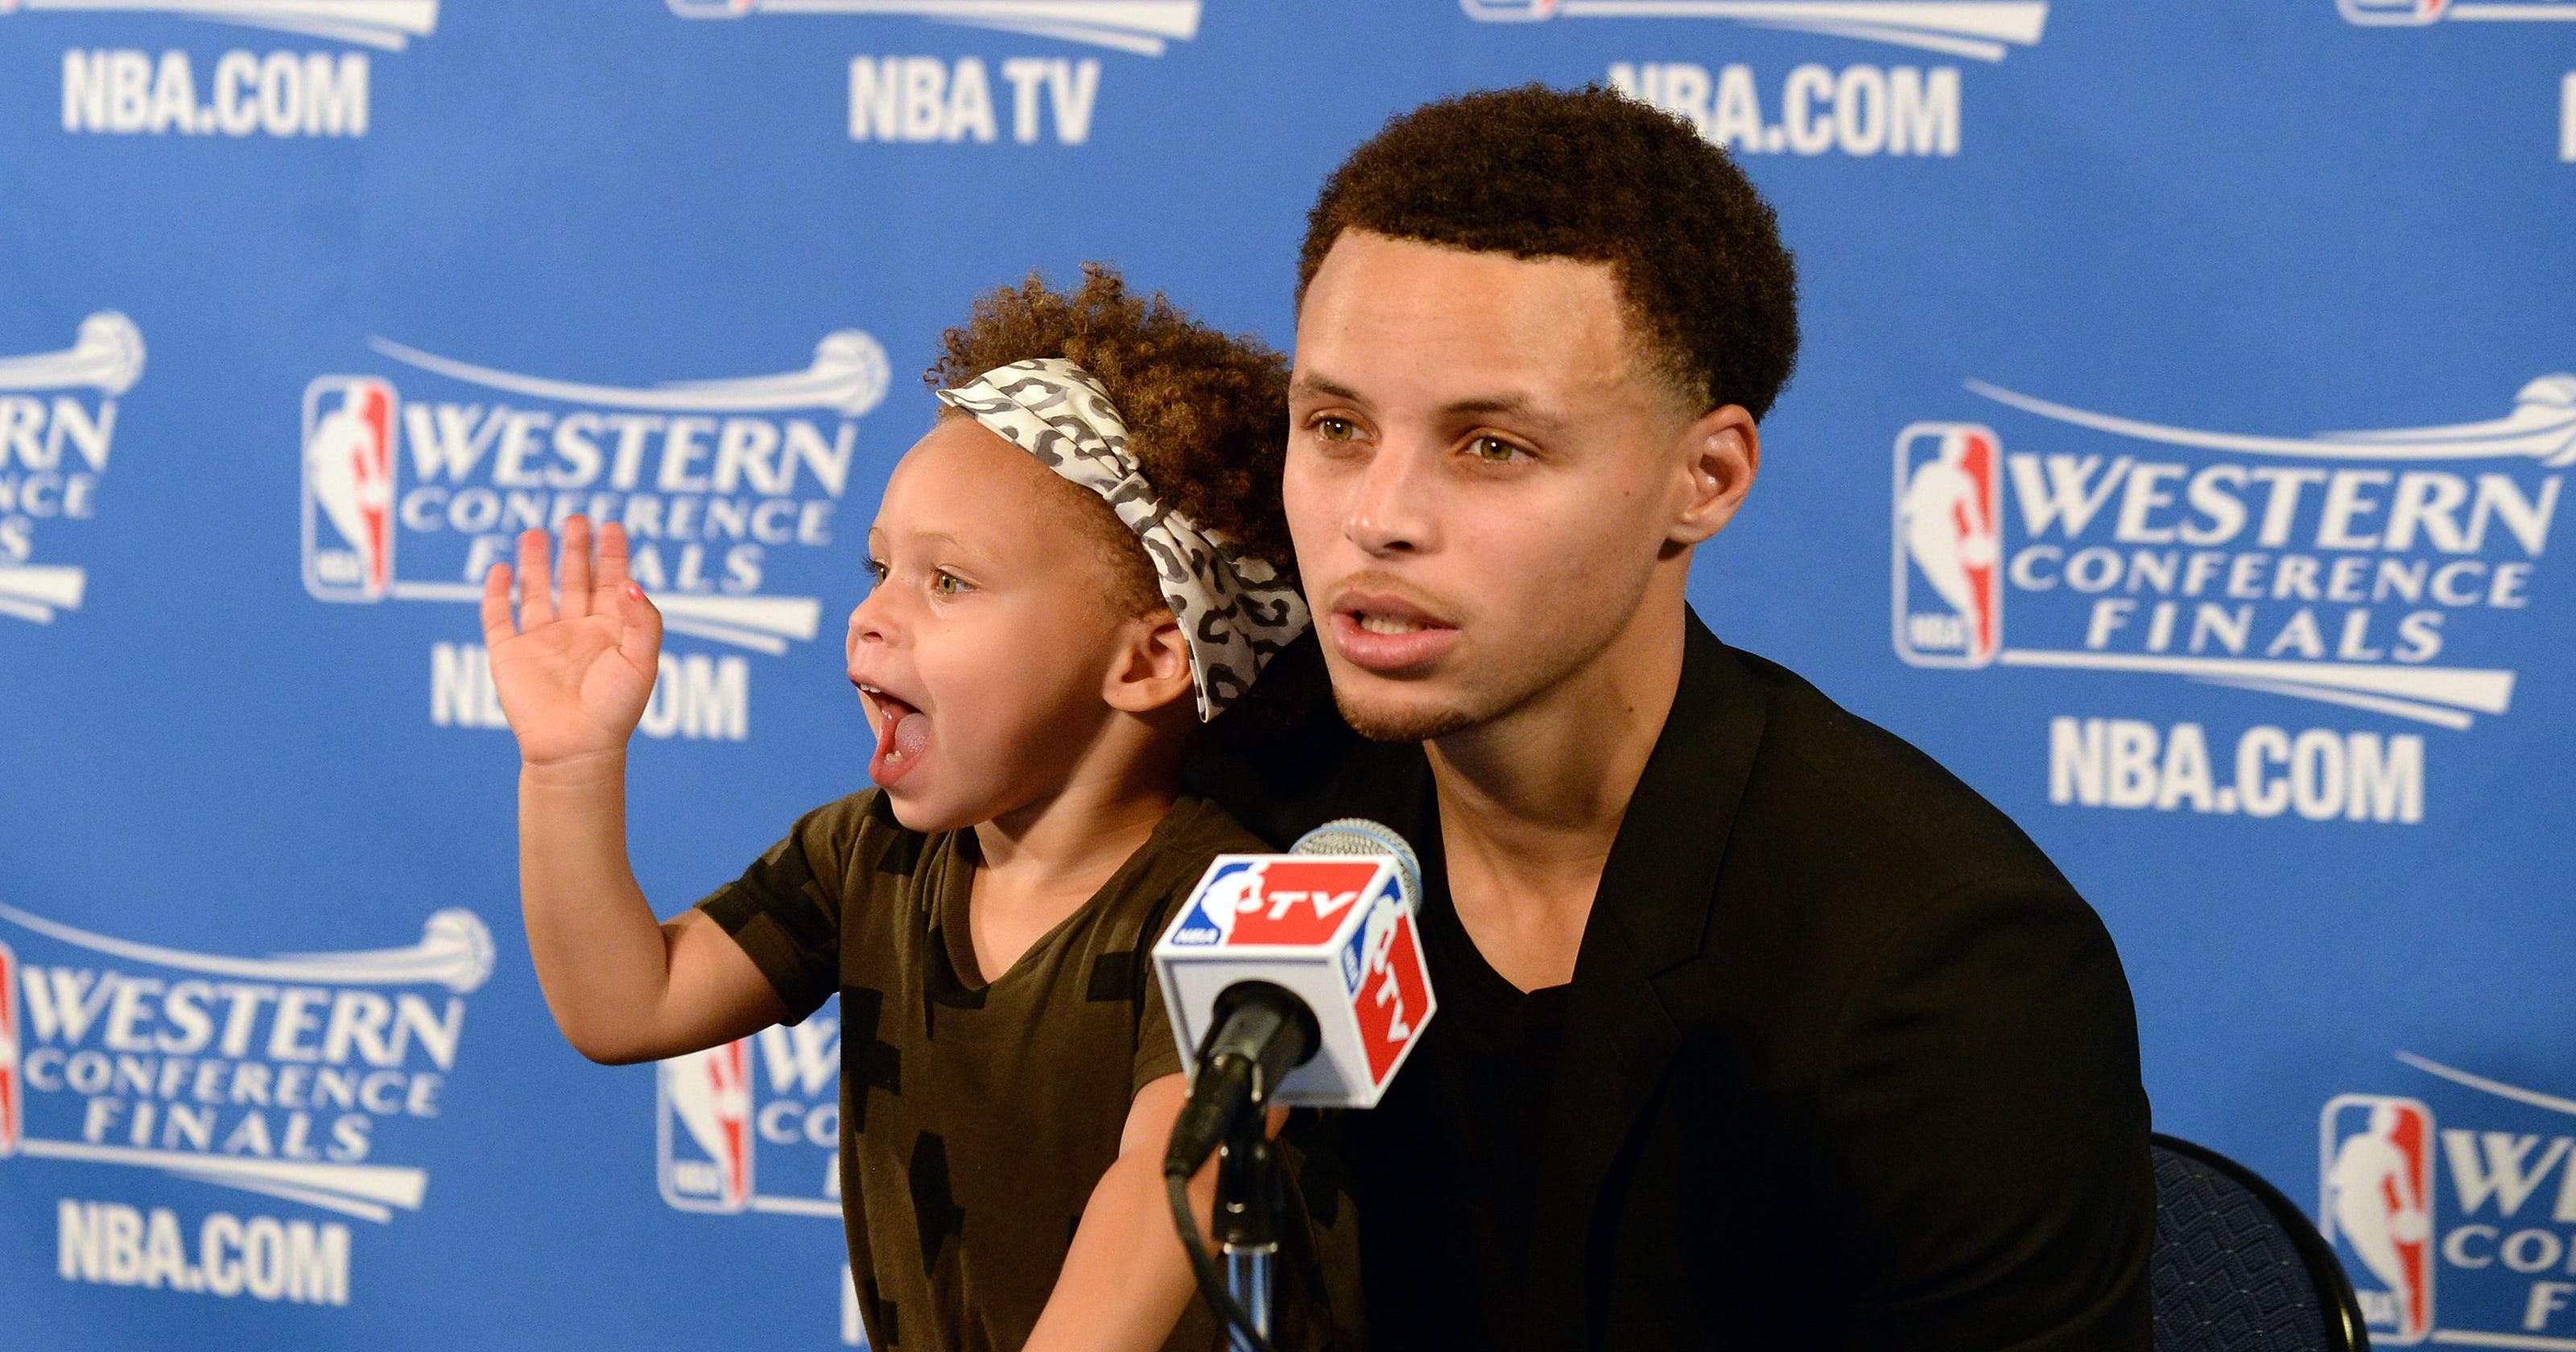 69cd2f51d32b Why is there an issue with kids at postgame press conferences